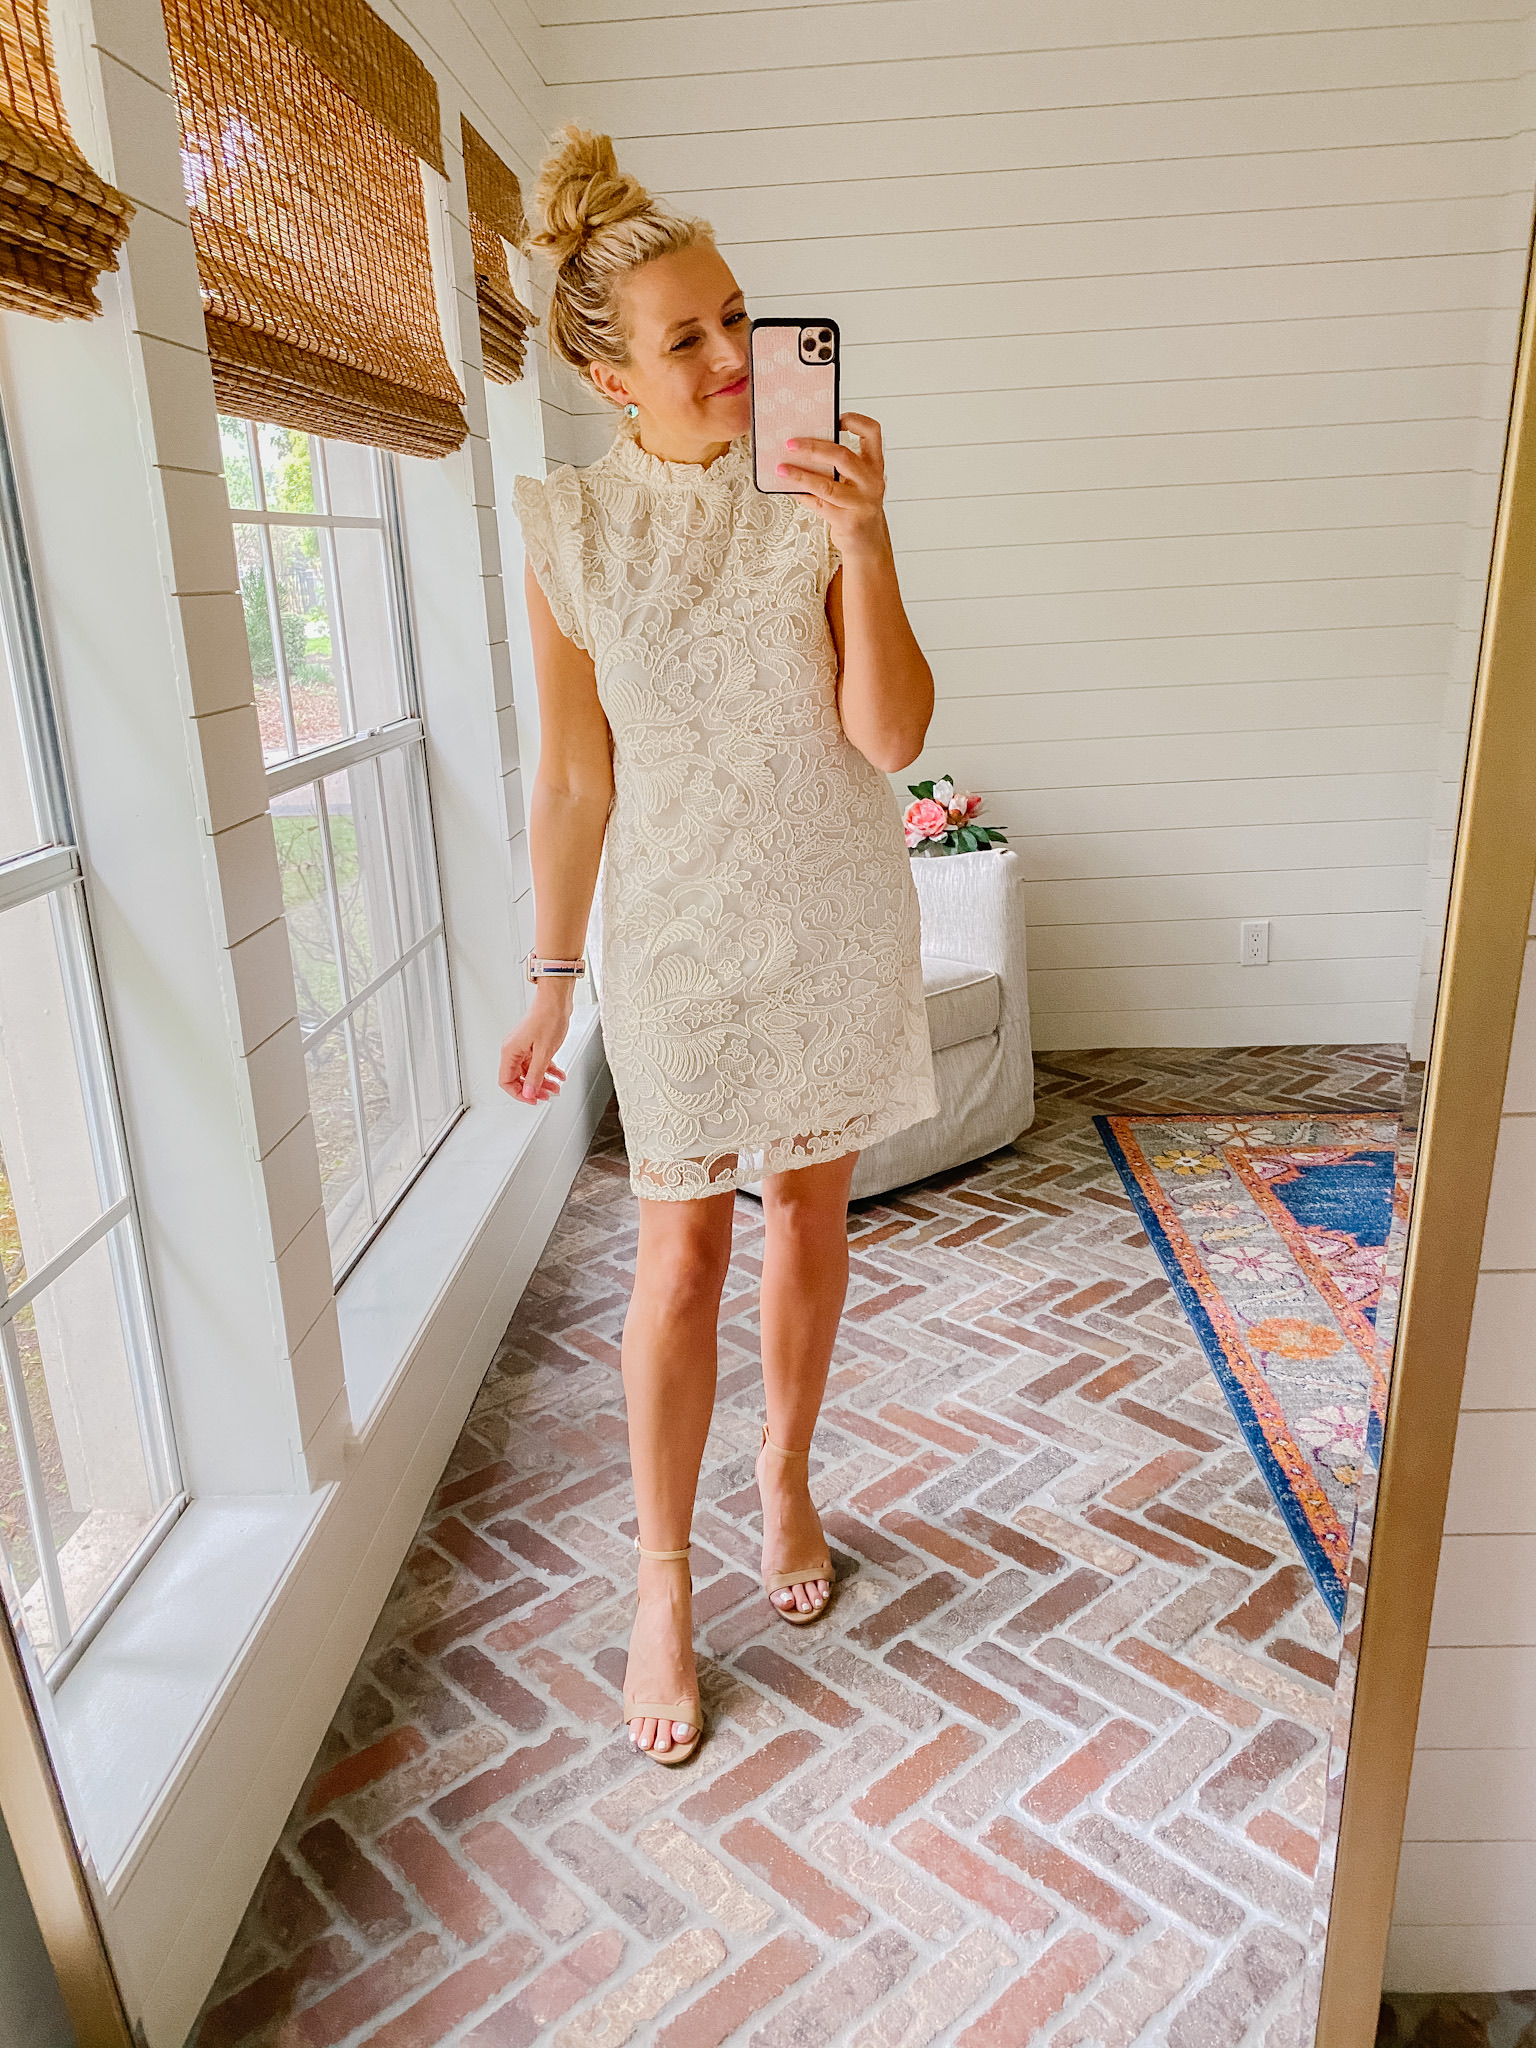 Express New Arrivals by popular Houston fashion blog, The House of Fancy: image of a woman wearing a Express cream lace mock neck dress with tan block heel sandals.